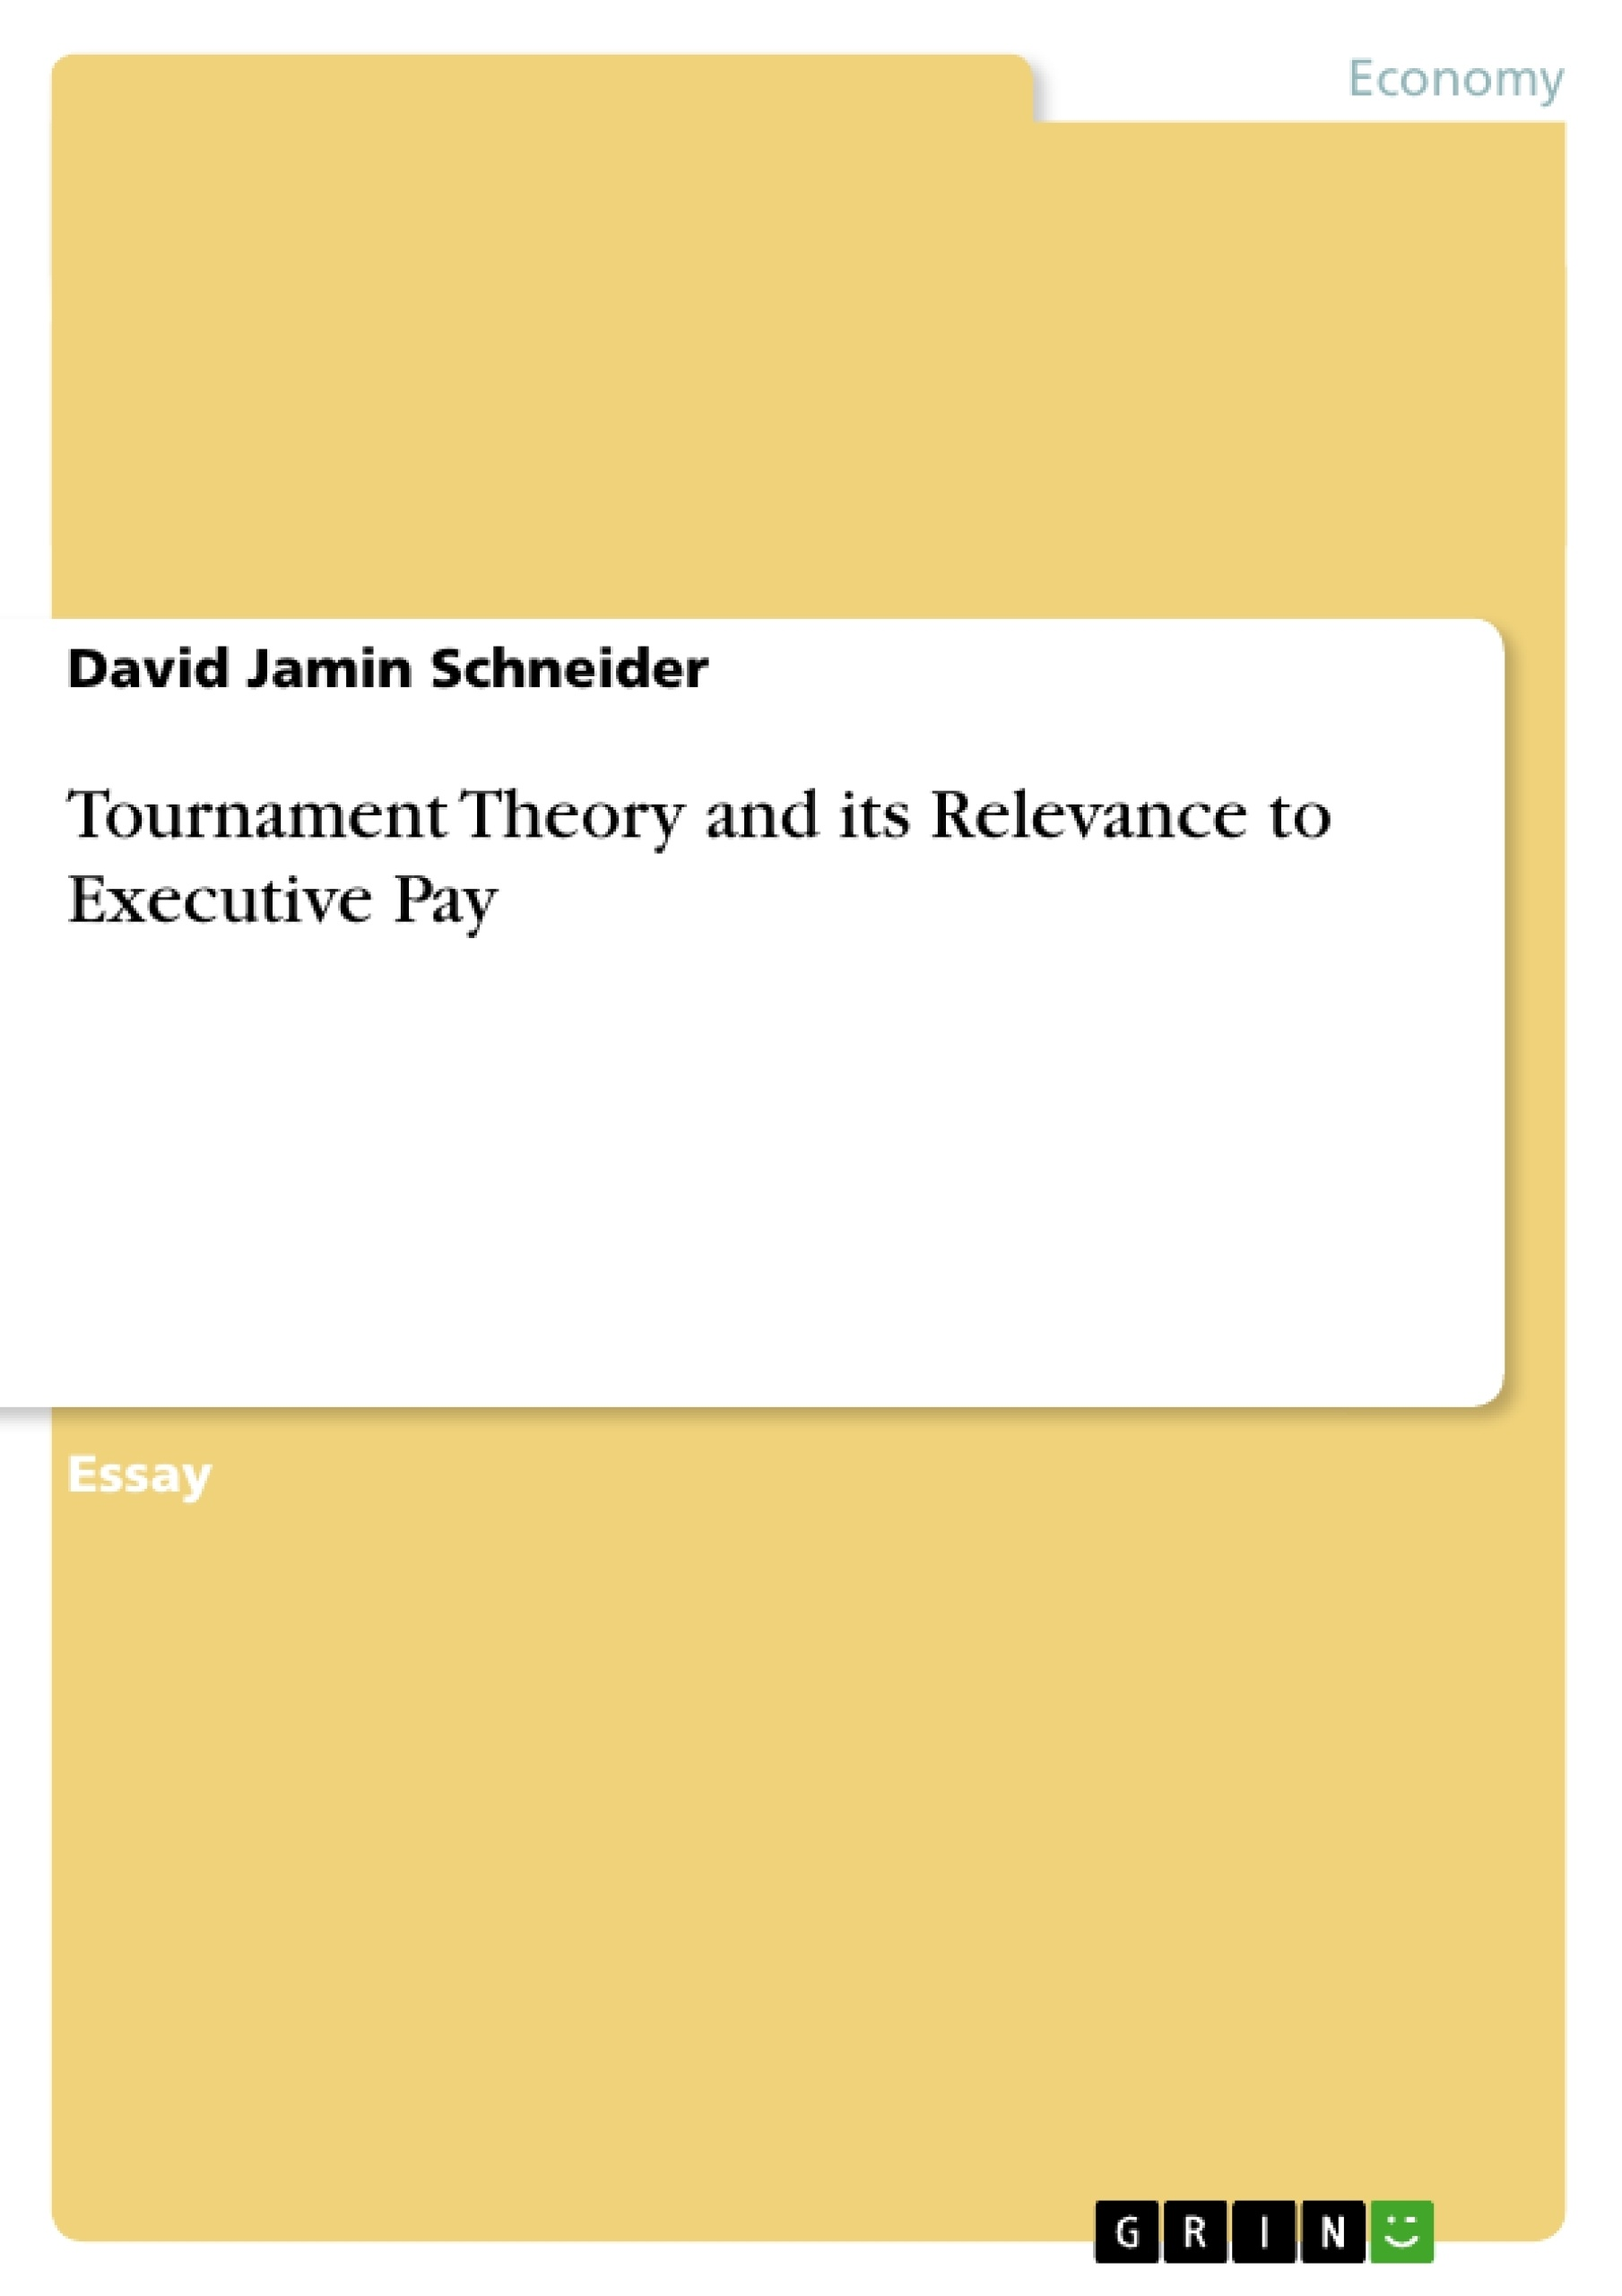 Title: Tournament Theory and its Relevance to Executive Pay